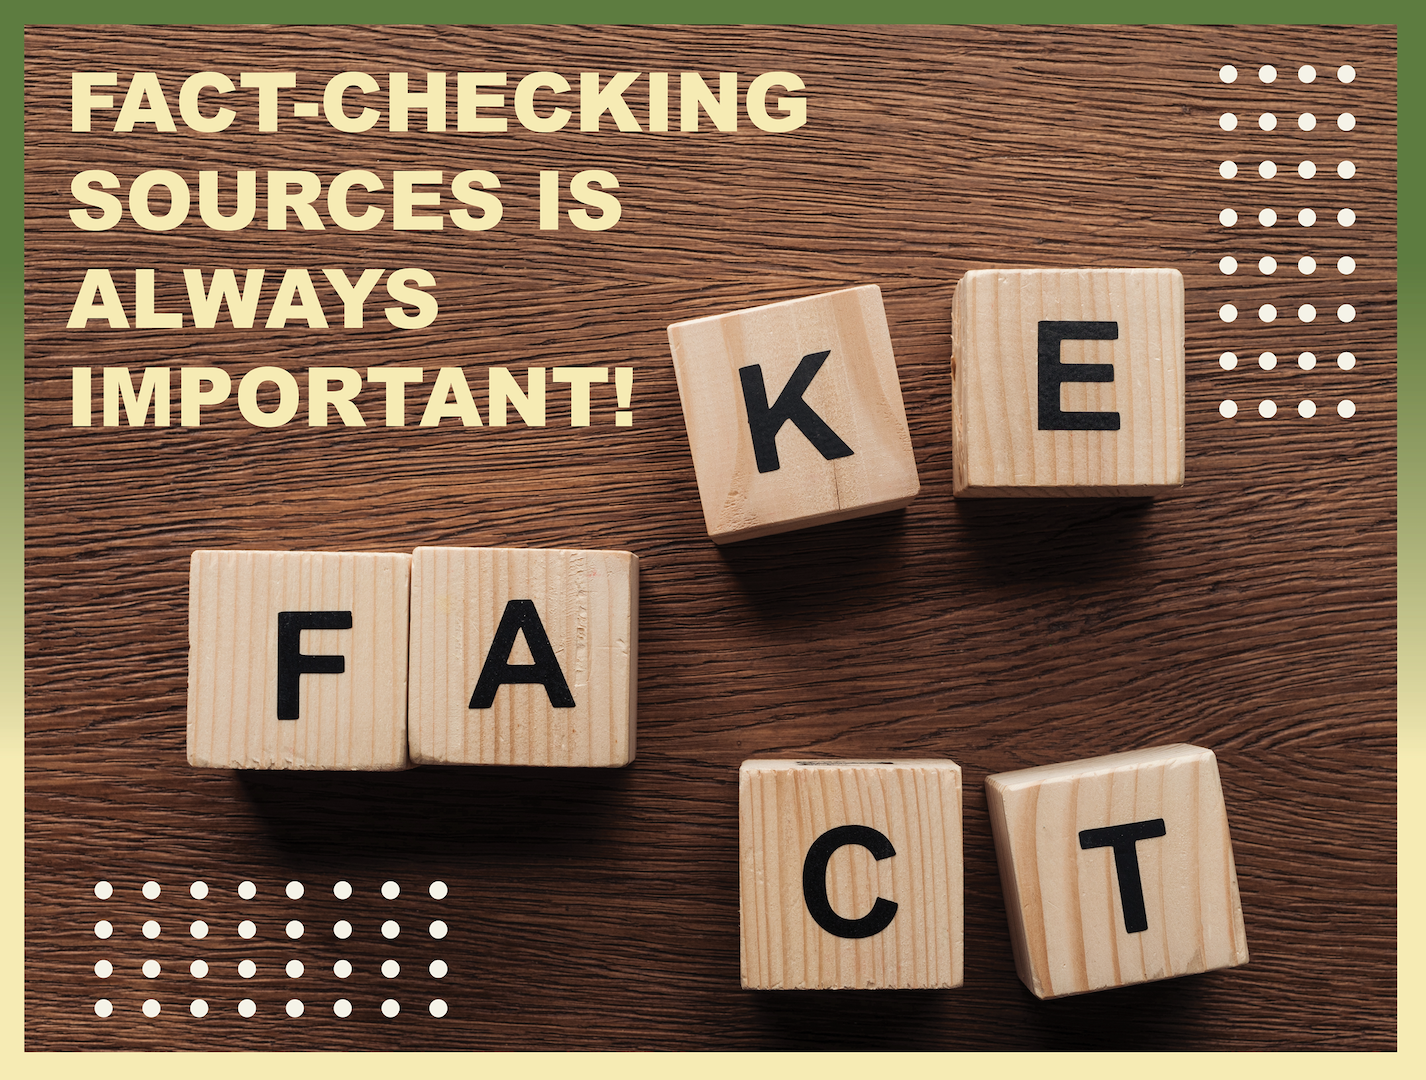 Fact-checking sources